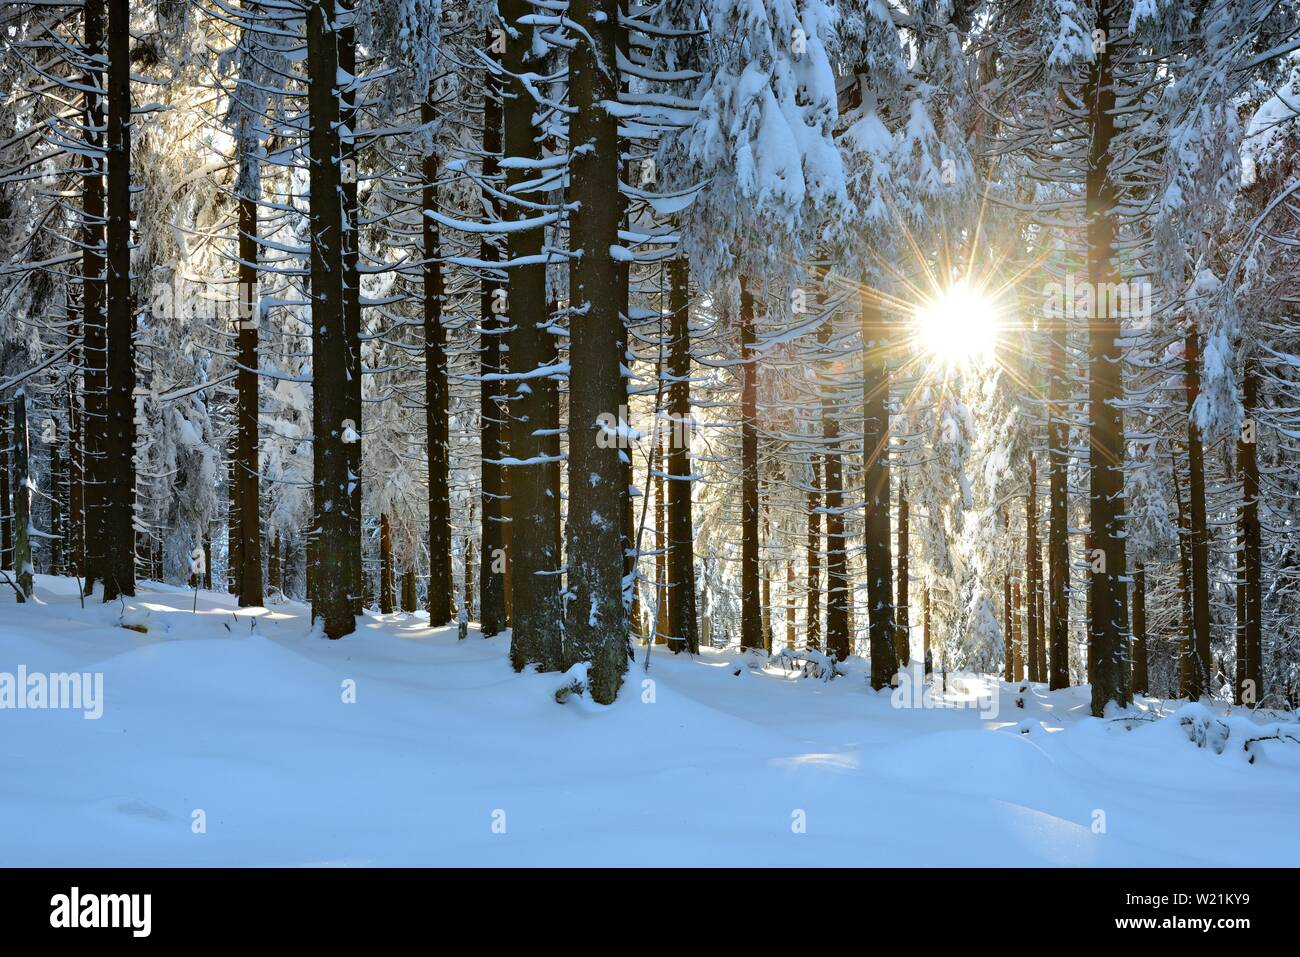 Sun shines through snow-covered spruce forest in winter, Harz National Park, Lower Saxony, Germany - Stock Image